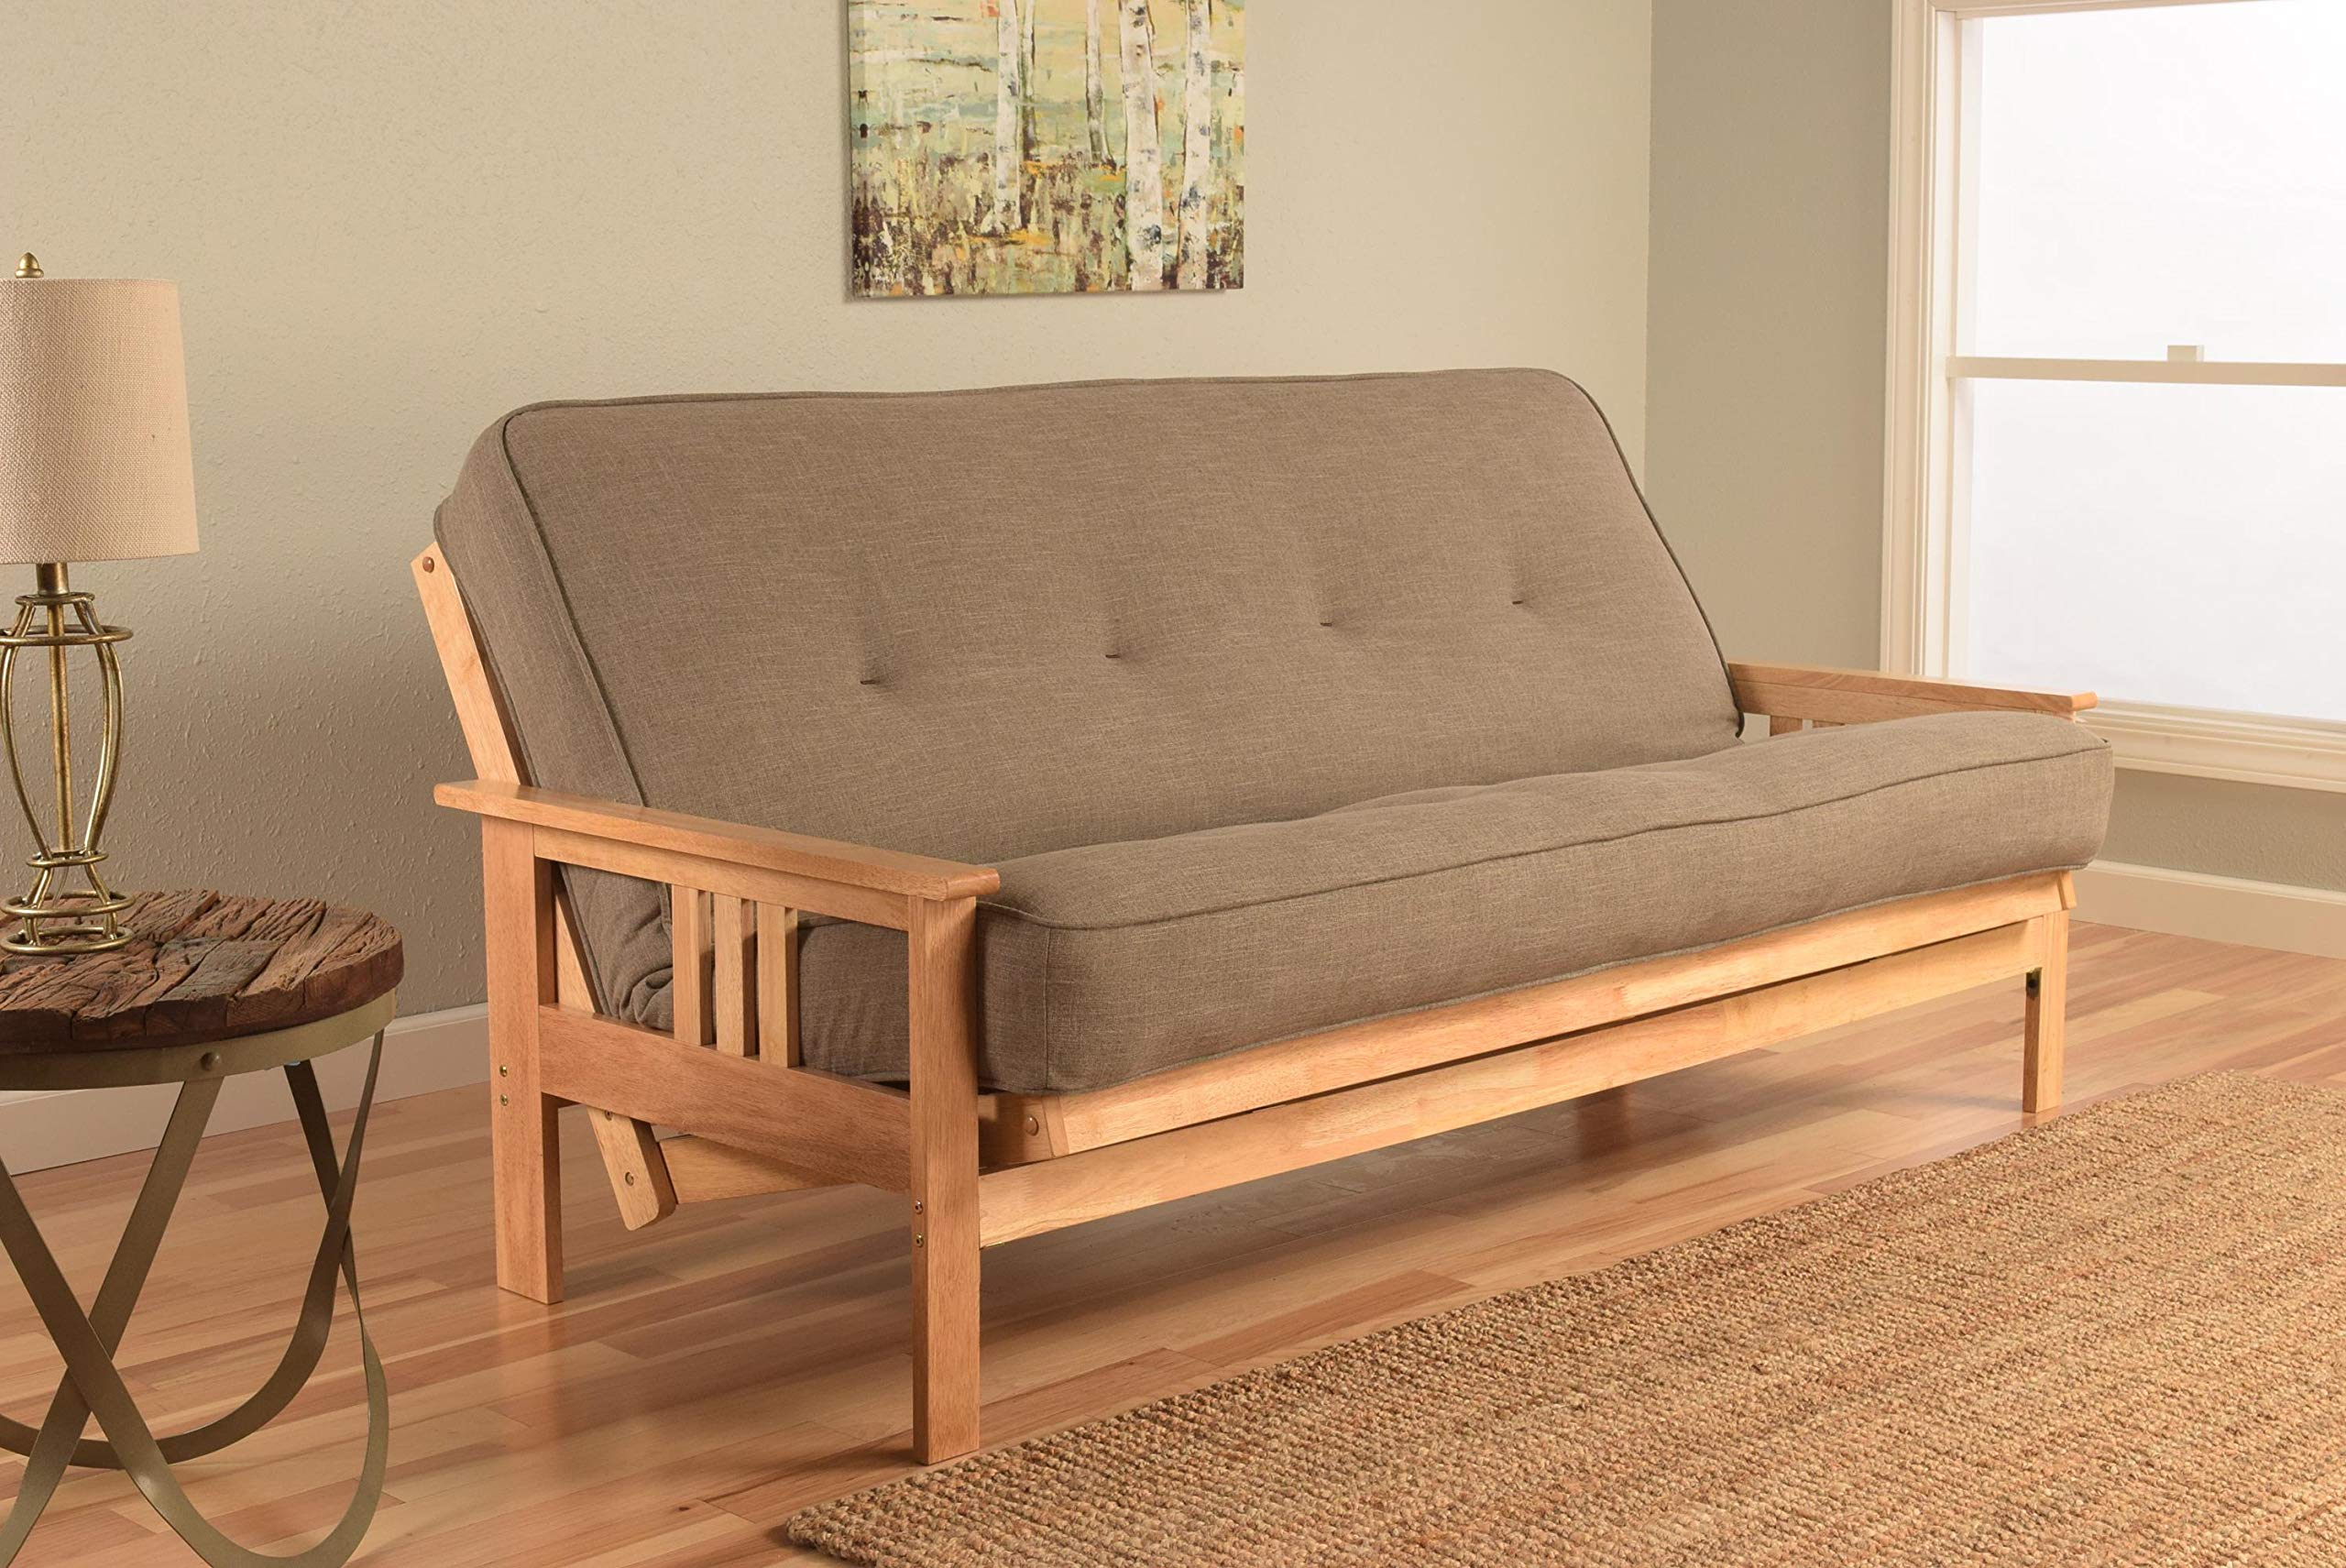 Kodiak Furniture Monterey Futons Set with Natural Finish, Full, Linen Stone by Kodiak Furniture